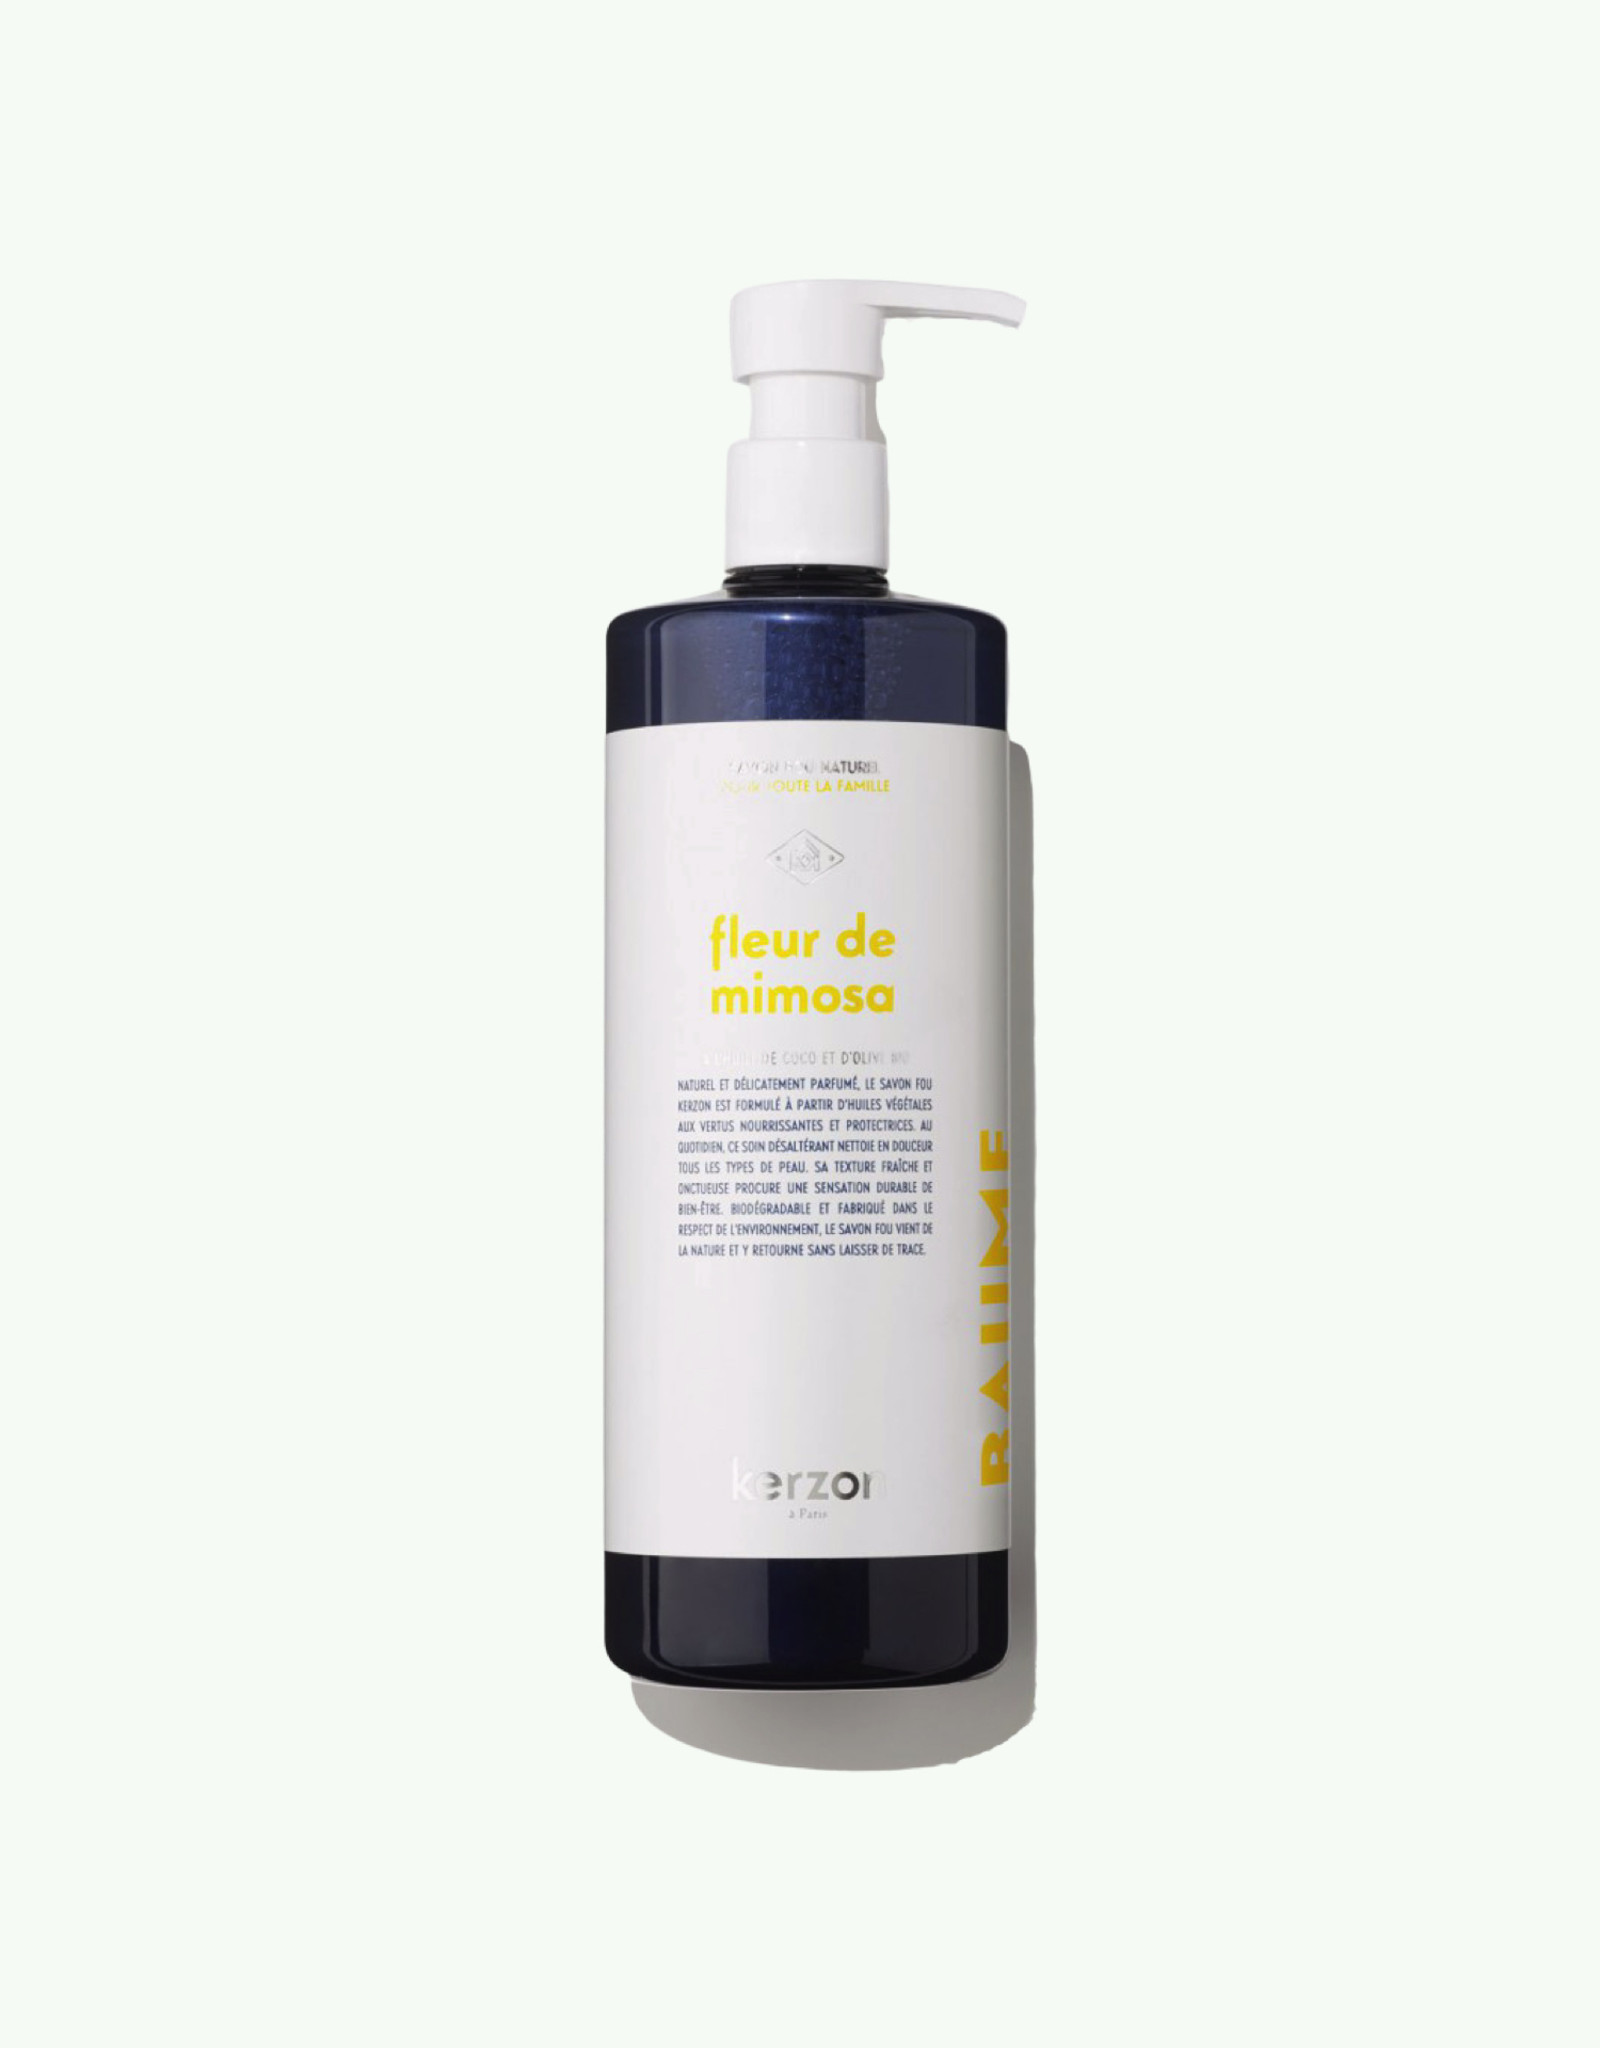 Kerzon Duo Fleur de Mimosa - Liquid soap and Hand lotion - Kerzon